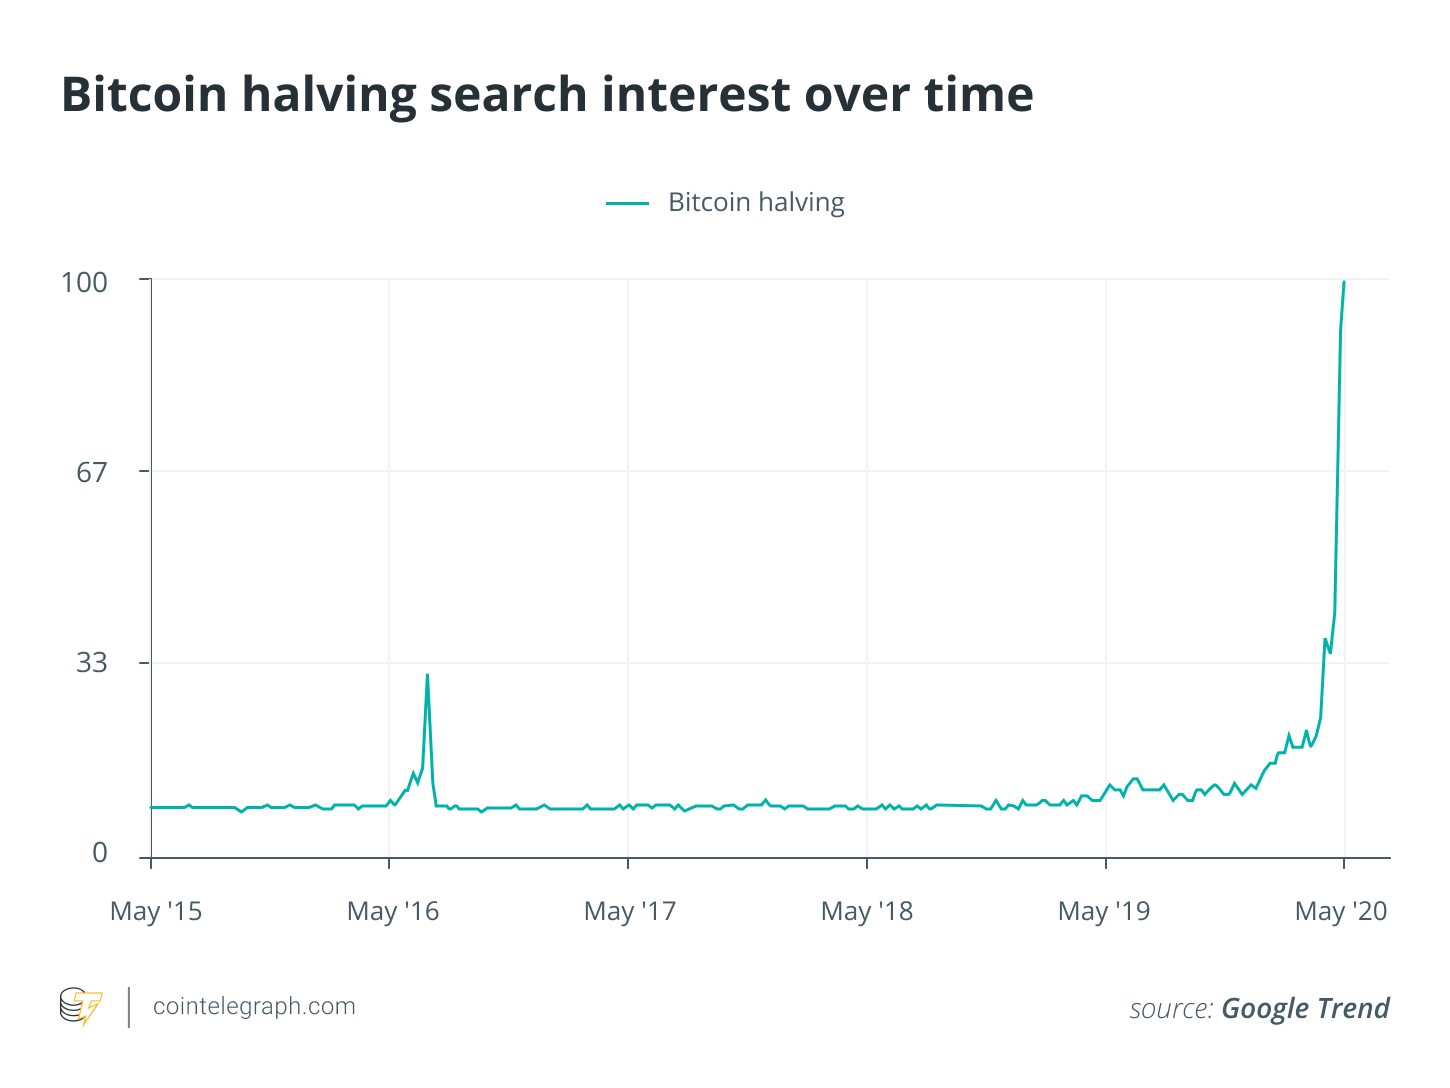 Bitcoin halving search interest over time